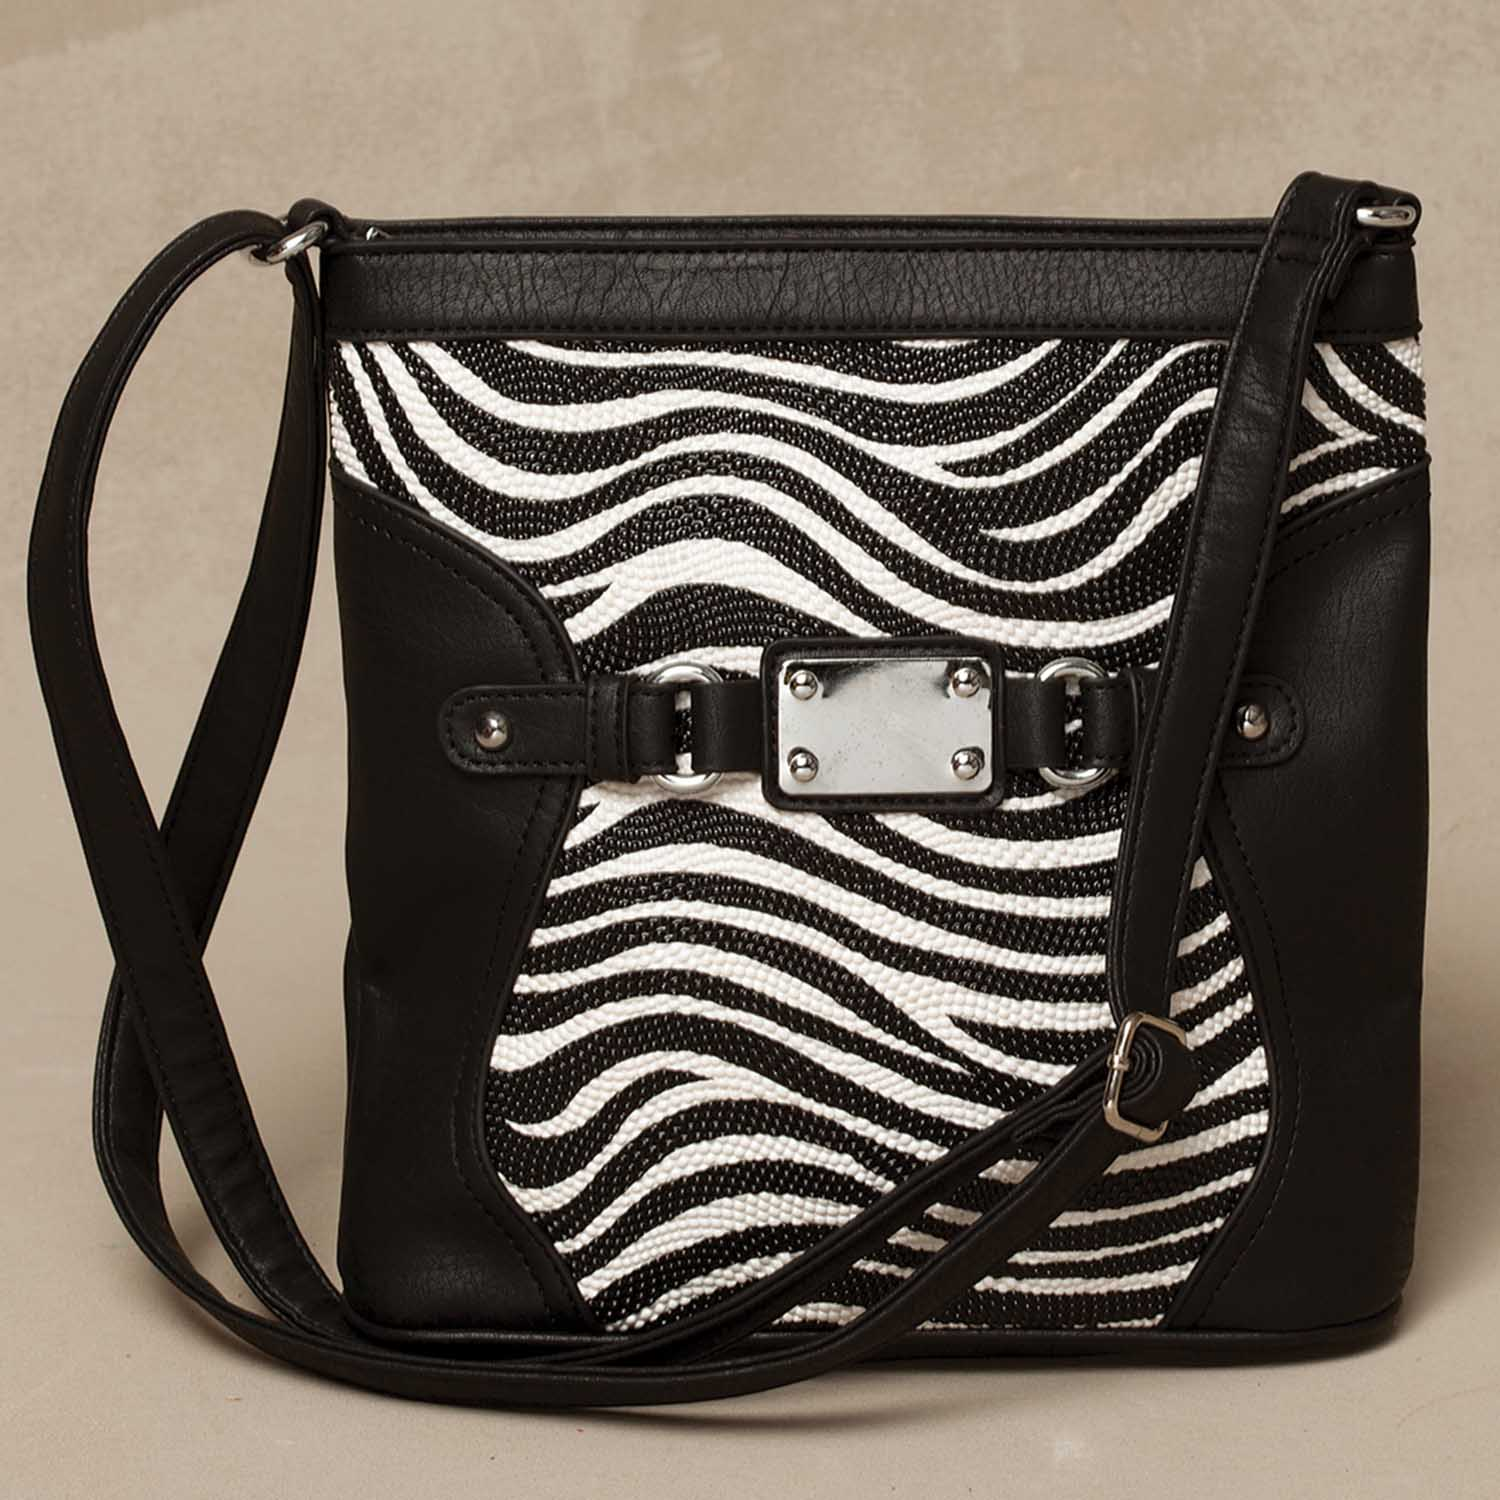 BLACK ZEBRA PATTERN CROSSBODY BAG